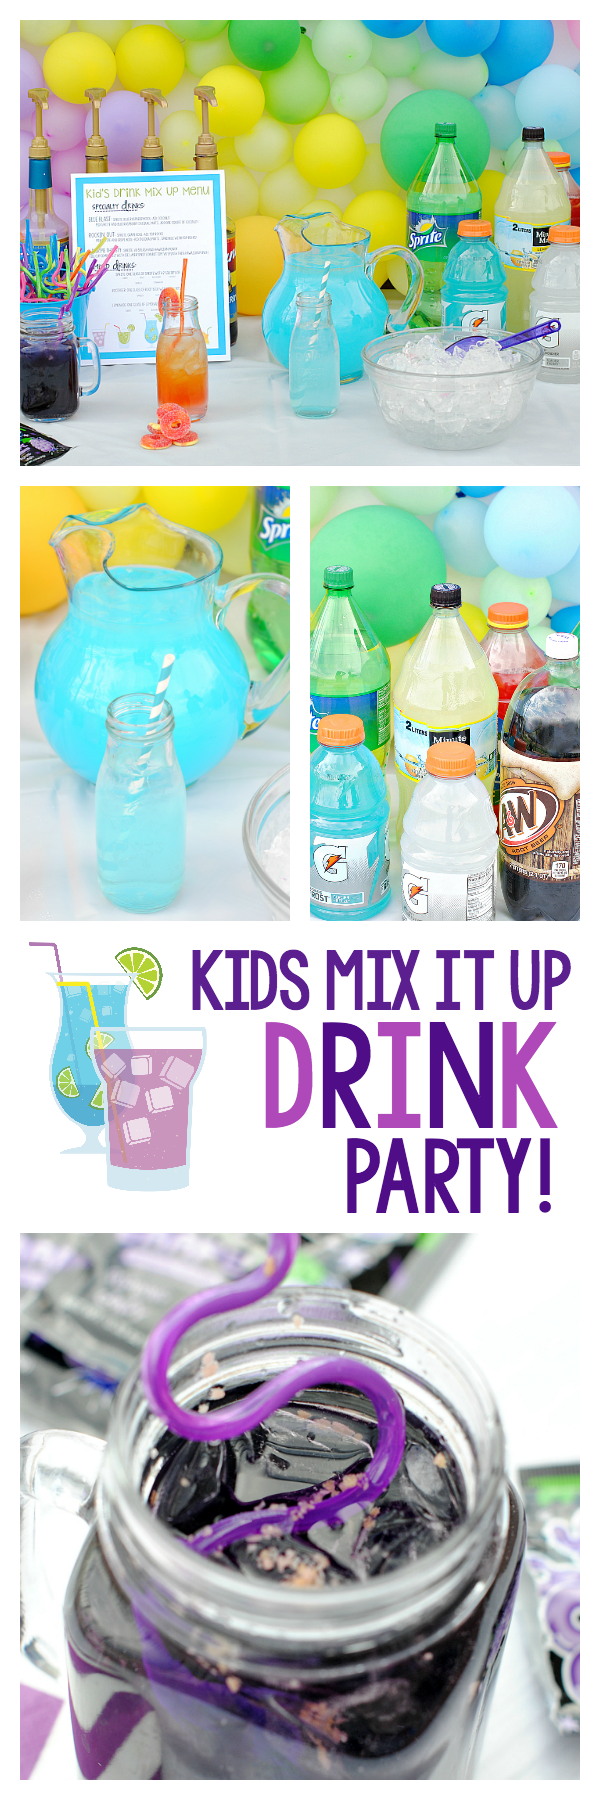 Fun Kid's Drink Party Ideas